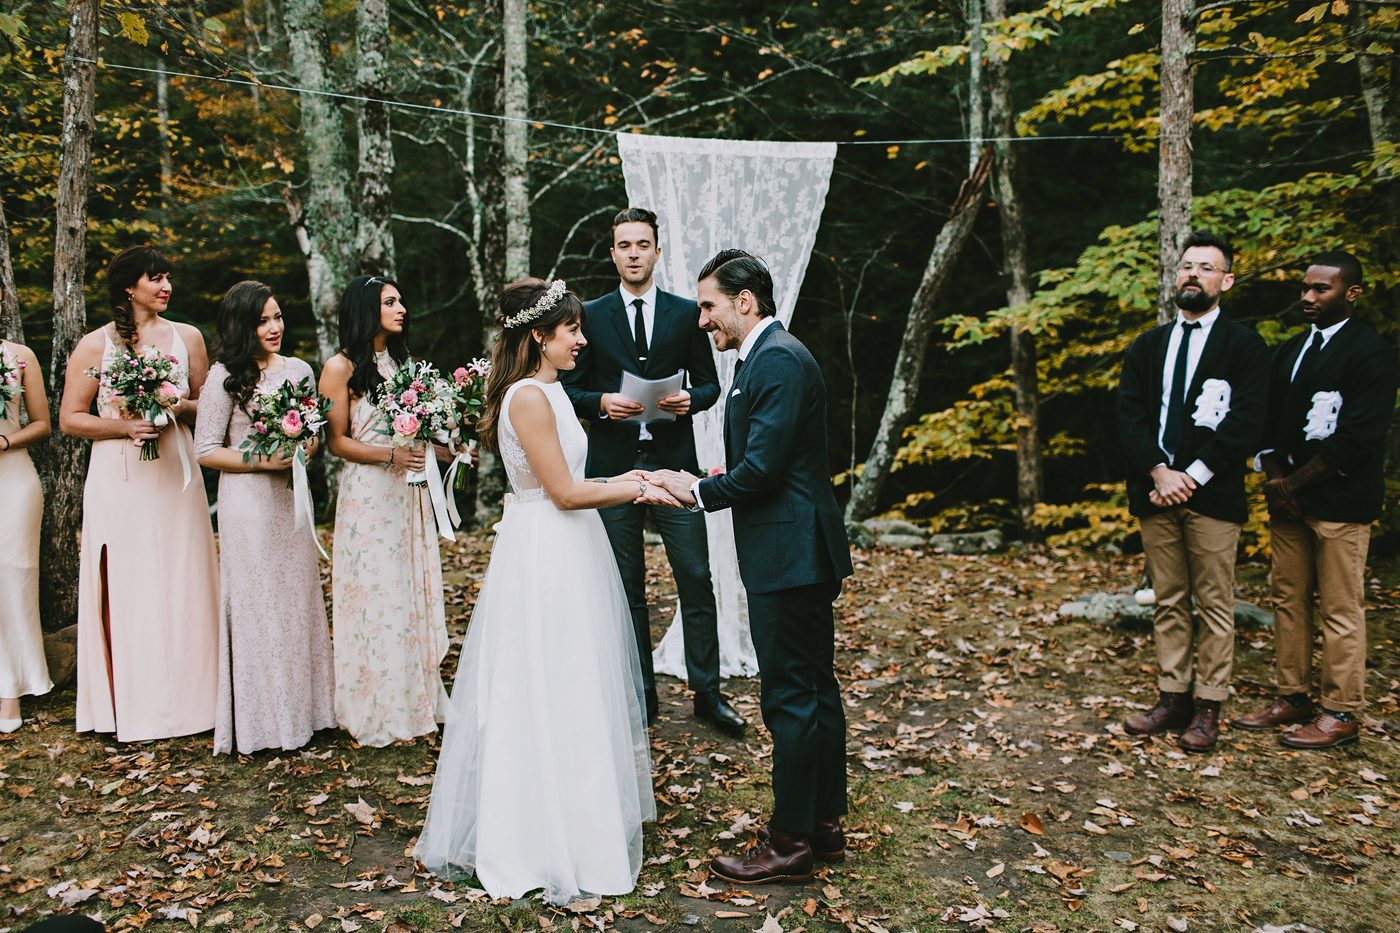 Cute couple exchanges vows at an autumn wedding